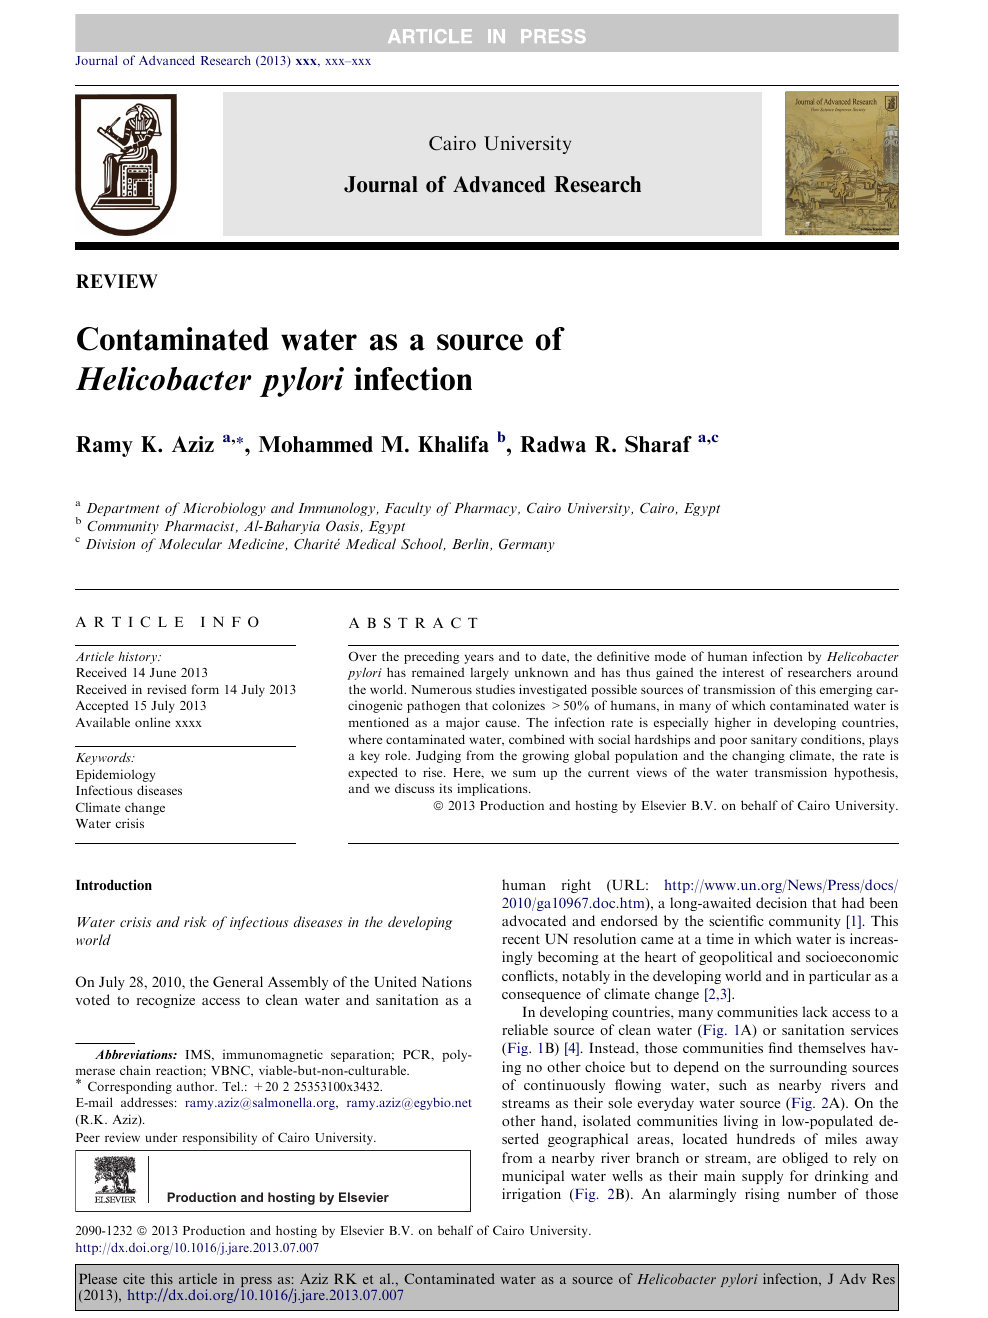 Contaminated water as a source of Helicobacter pylori